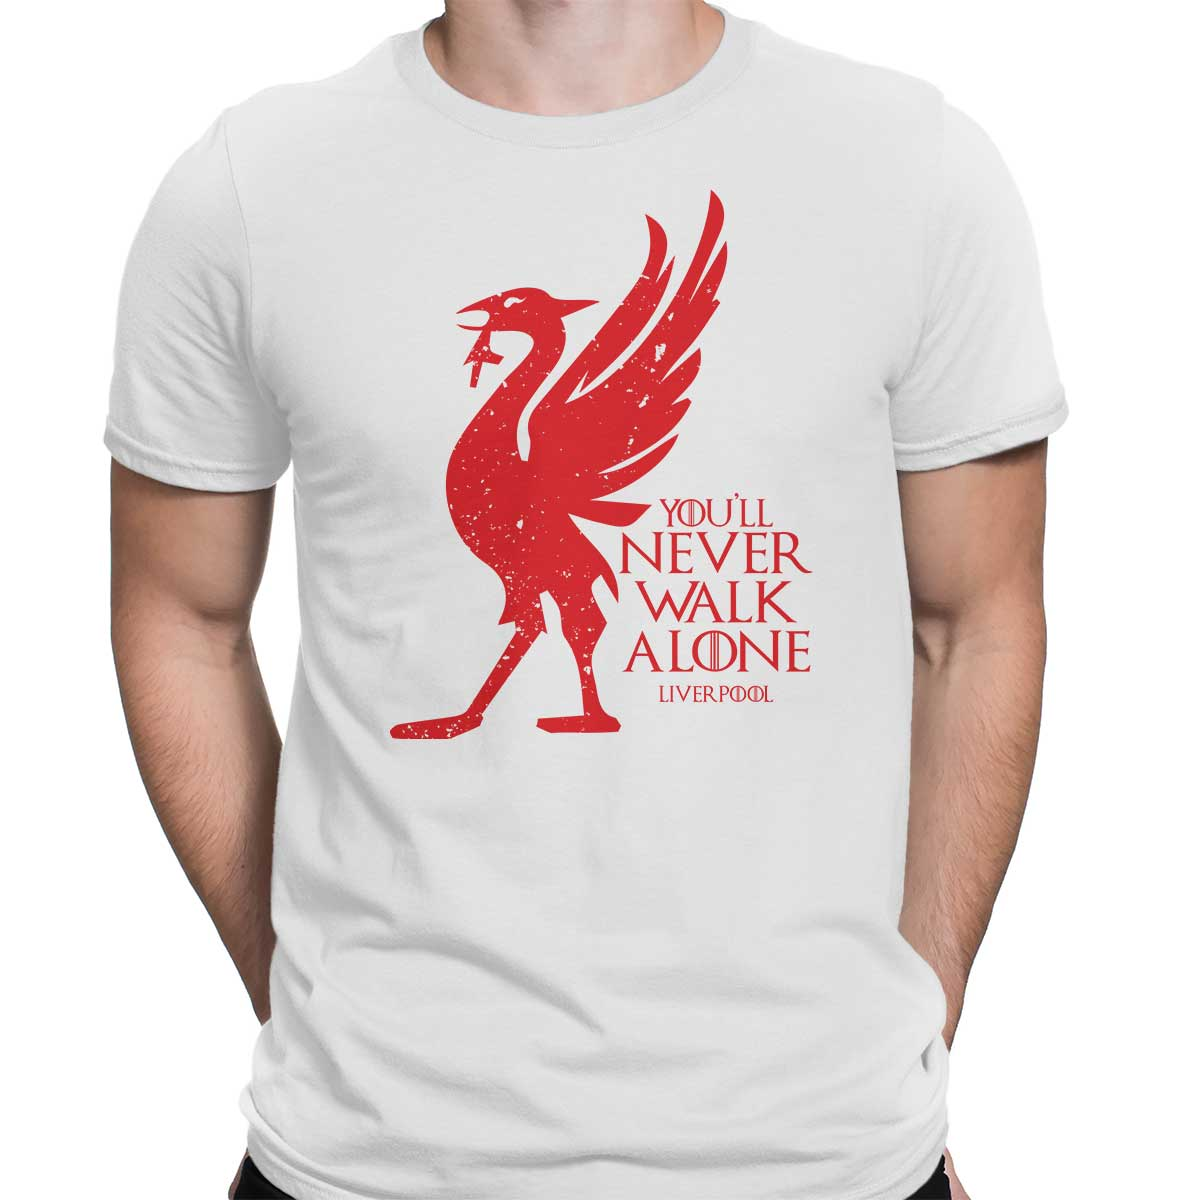 House Liverpool Men's Classic Tee